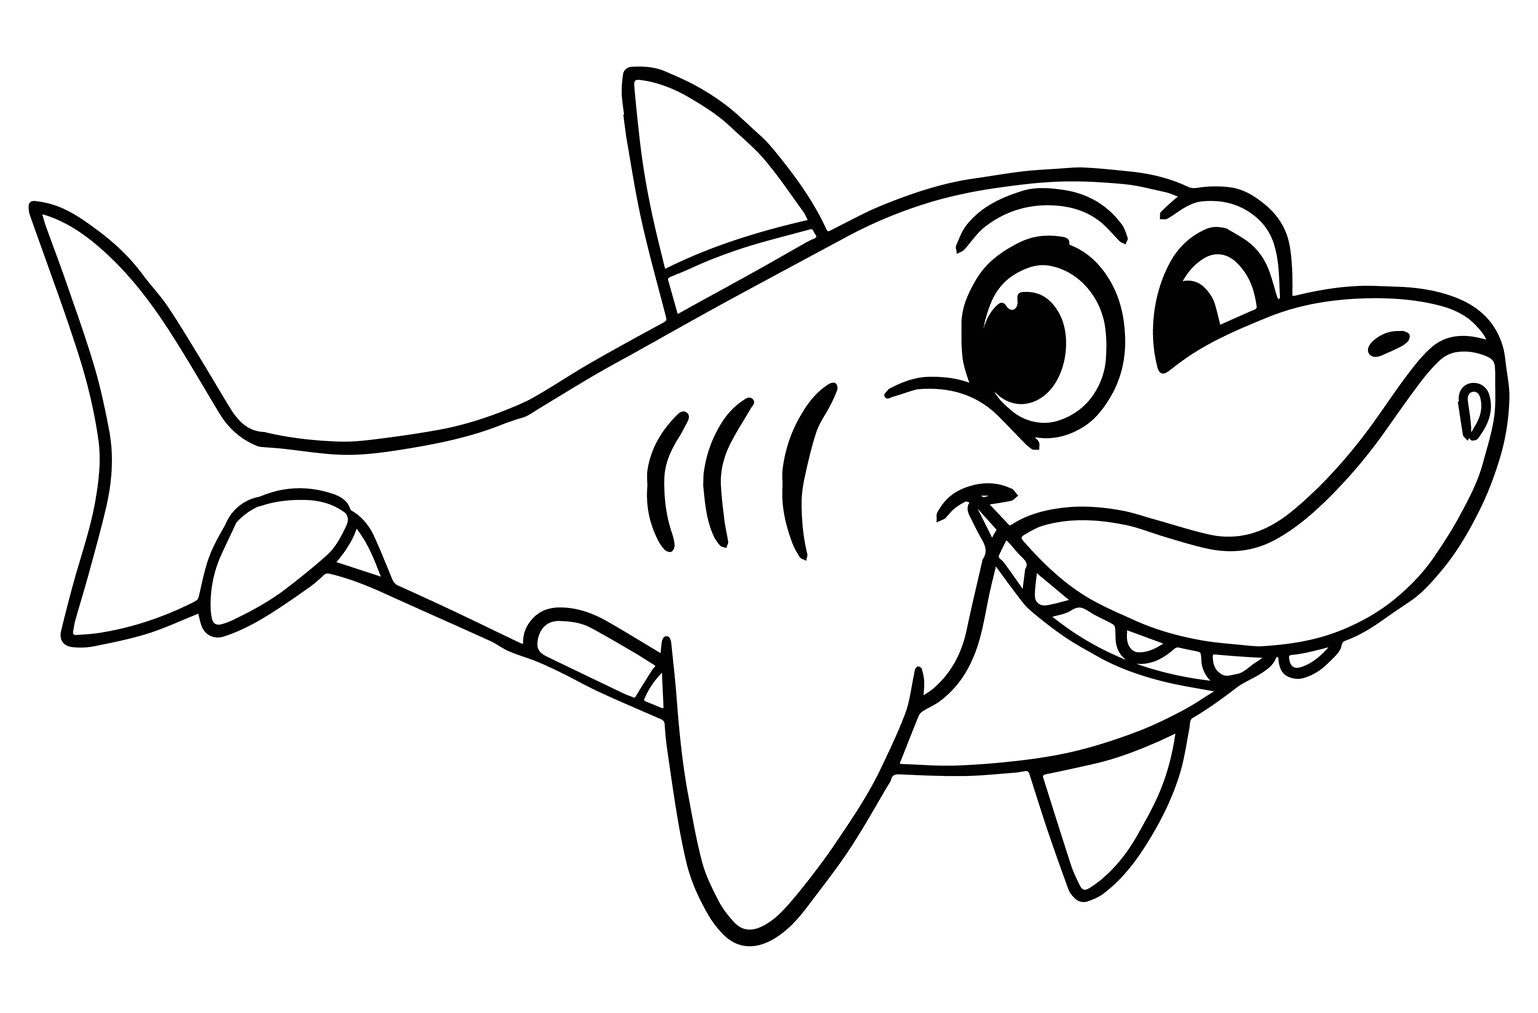 Sharks to color for children - Sharks Kids Coloring Pages